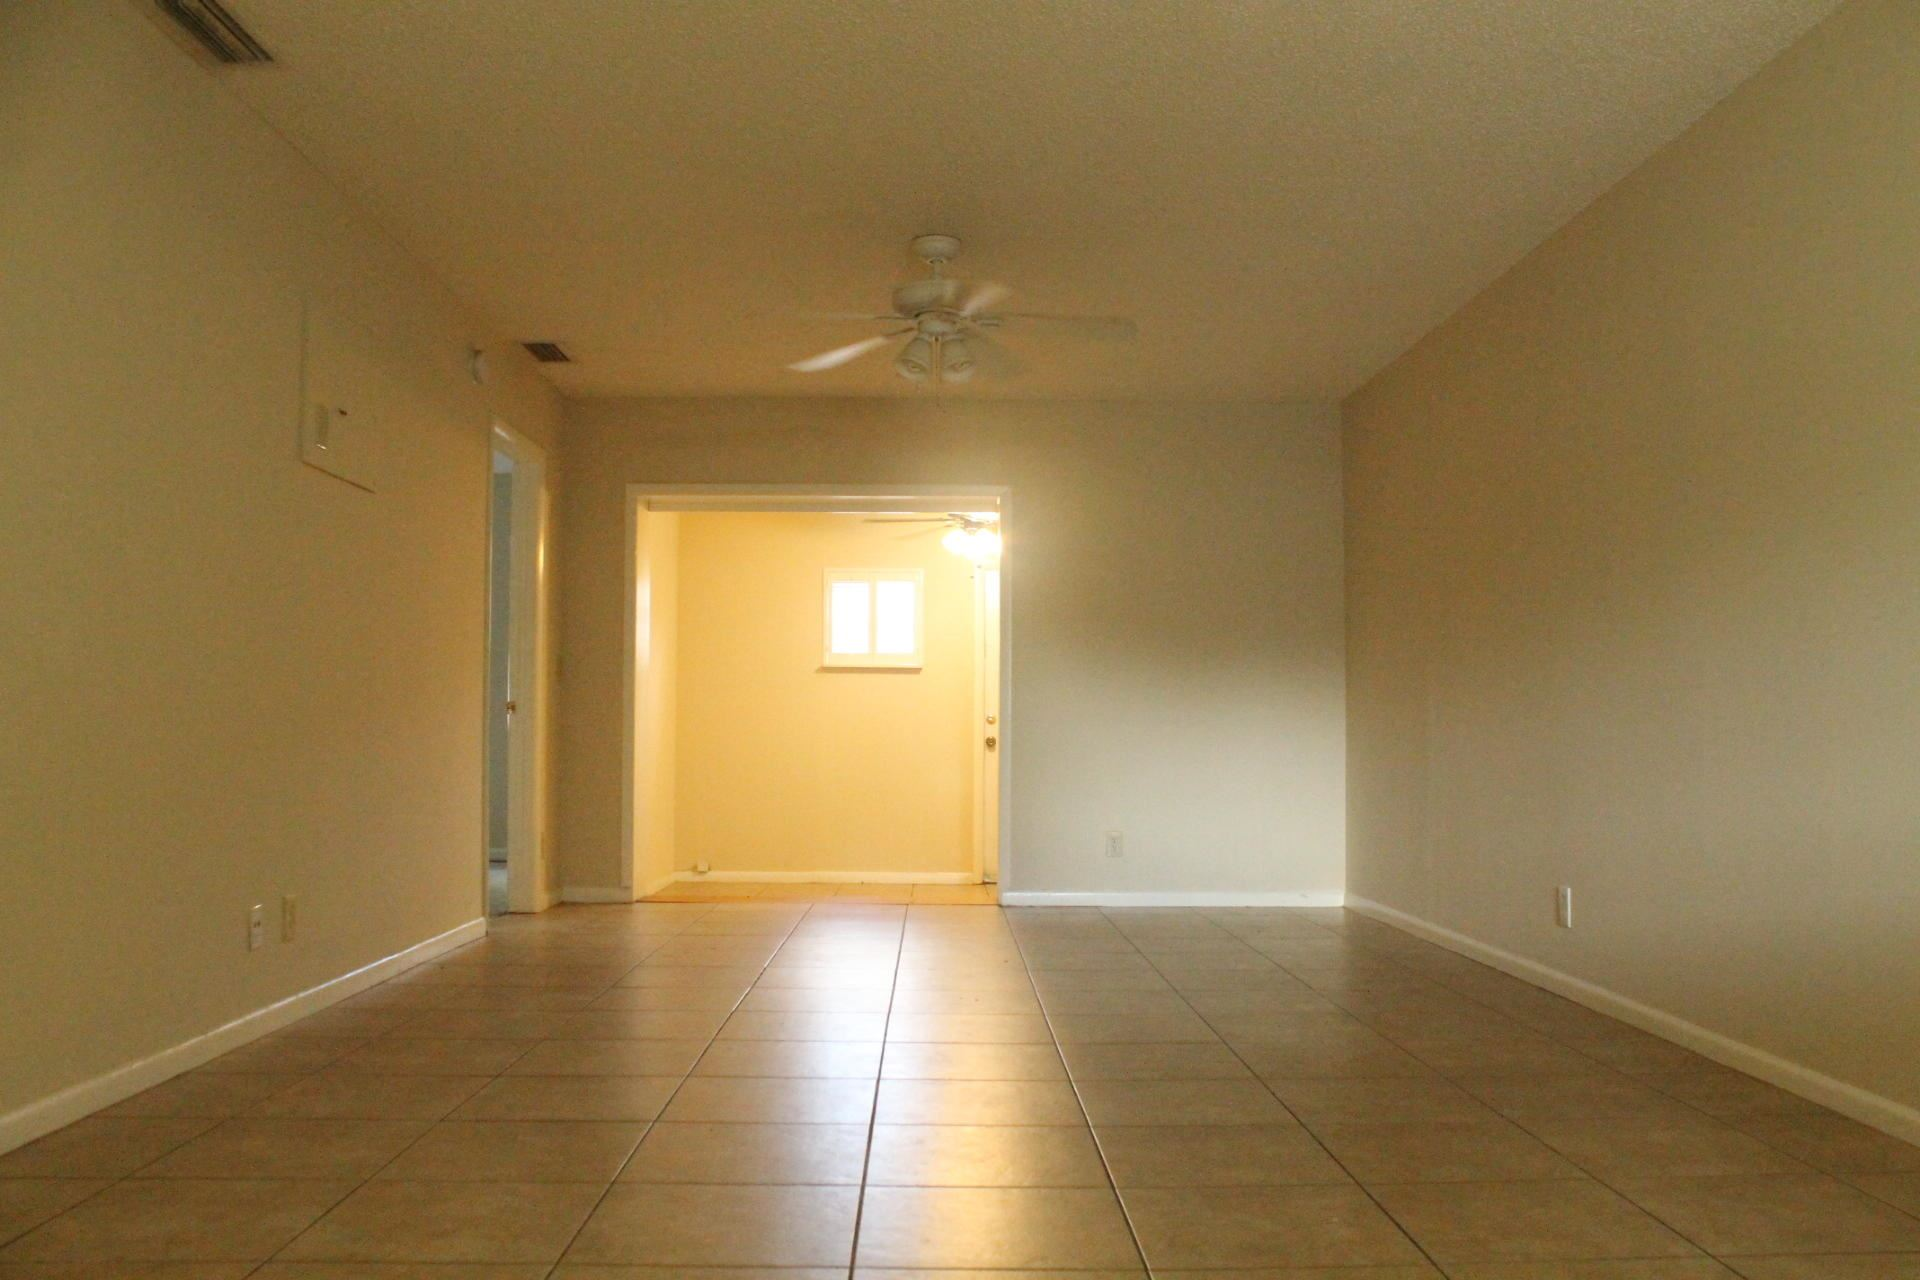 Photo of 8682 Satalite Terrace, West Palm Beach, FL 33403 (MLS # RX-10674478)